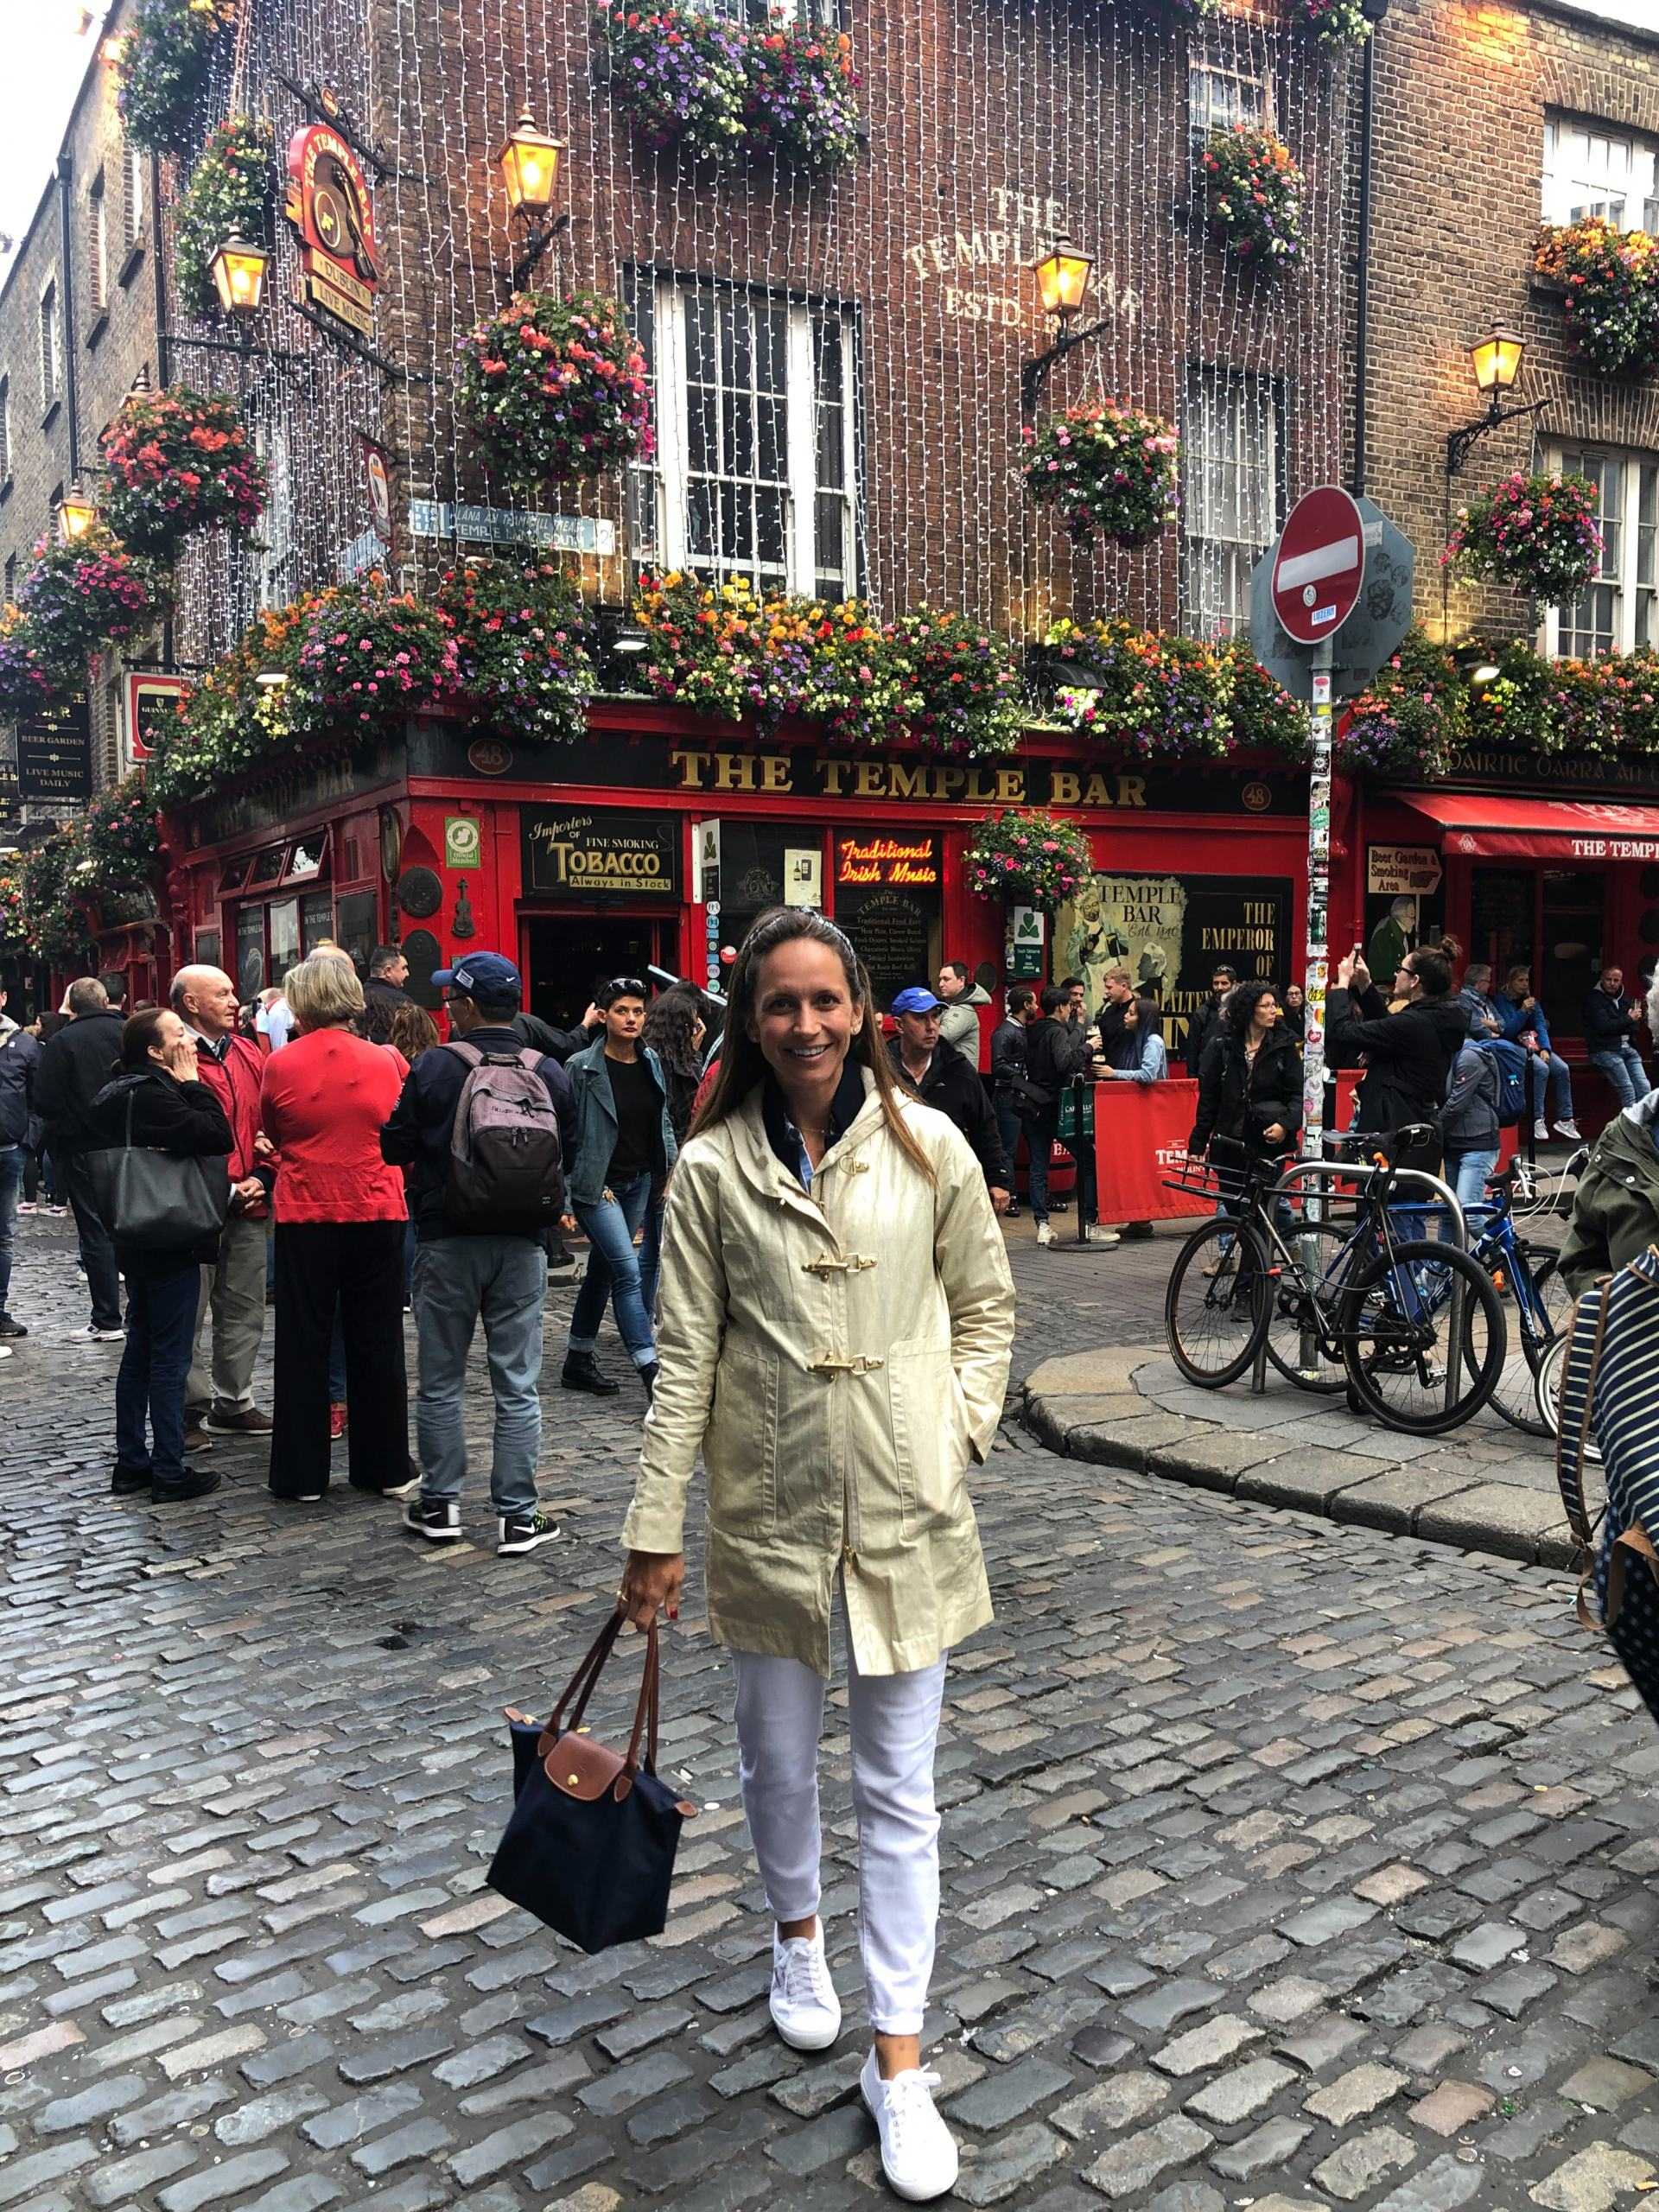 dublin - traveling in ireland - travel style - travel outfit inspo - temple bar